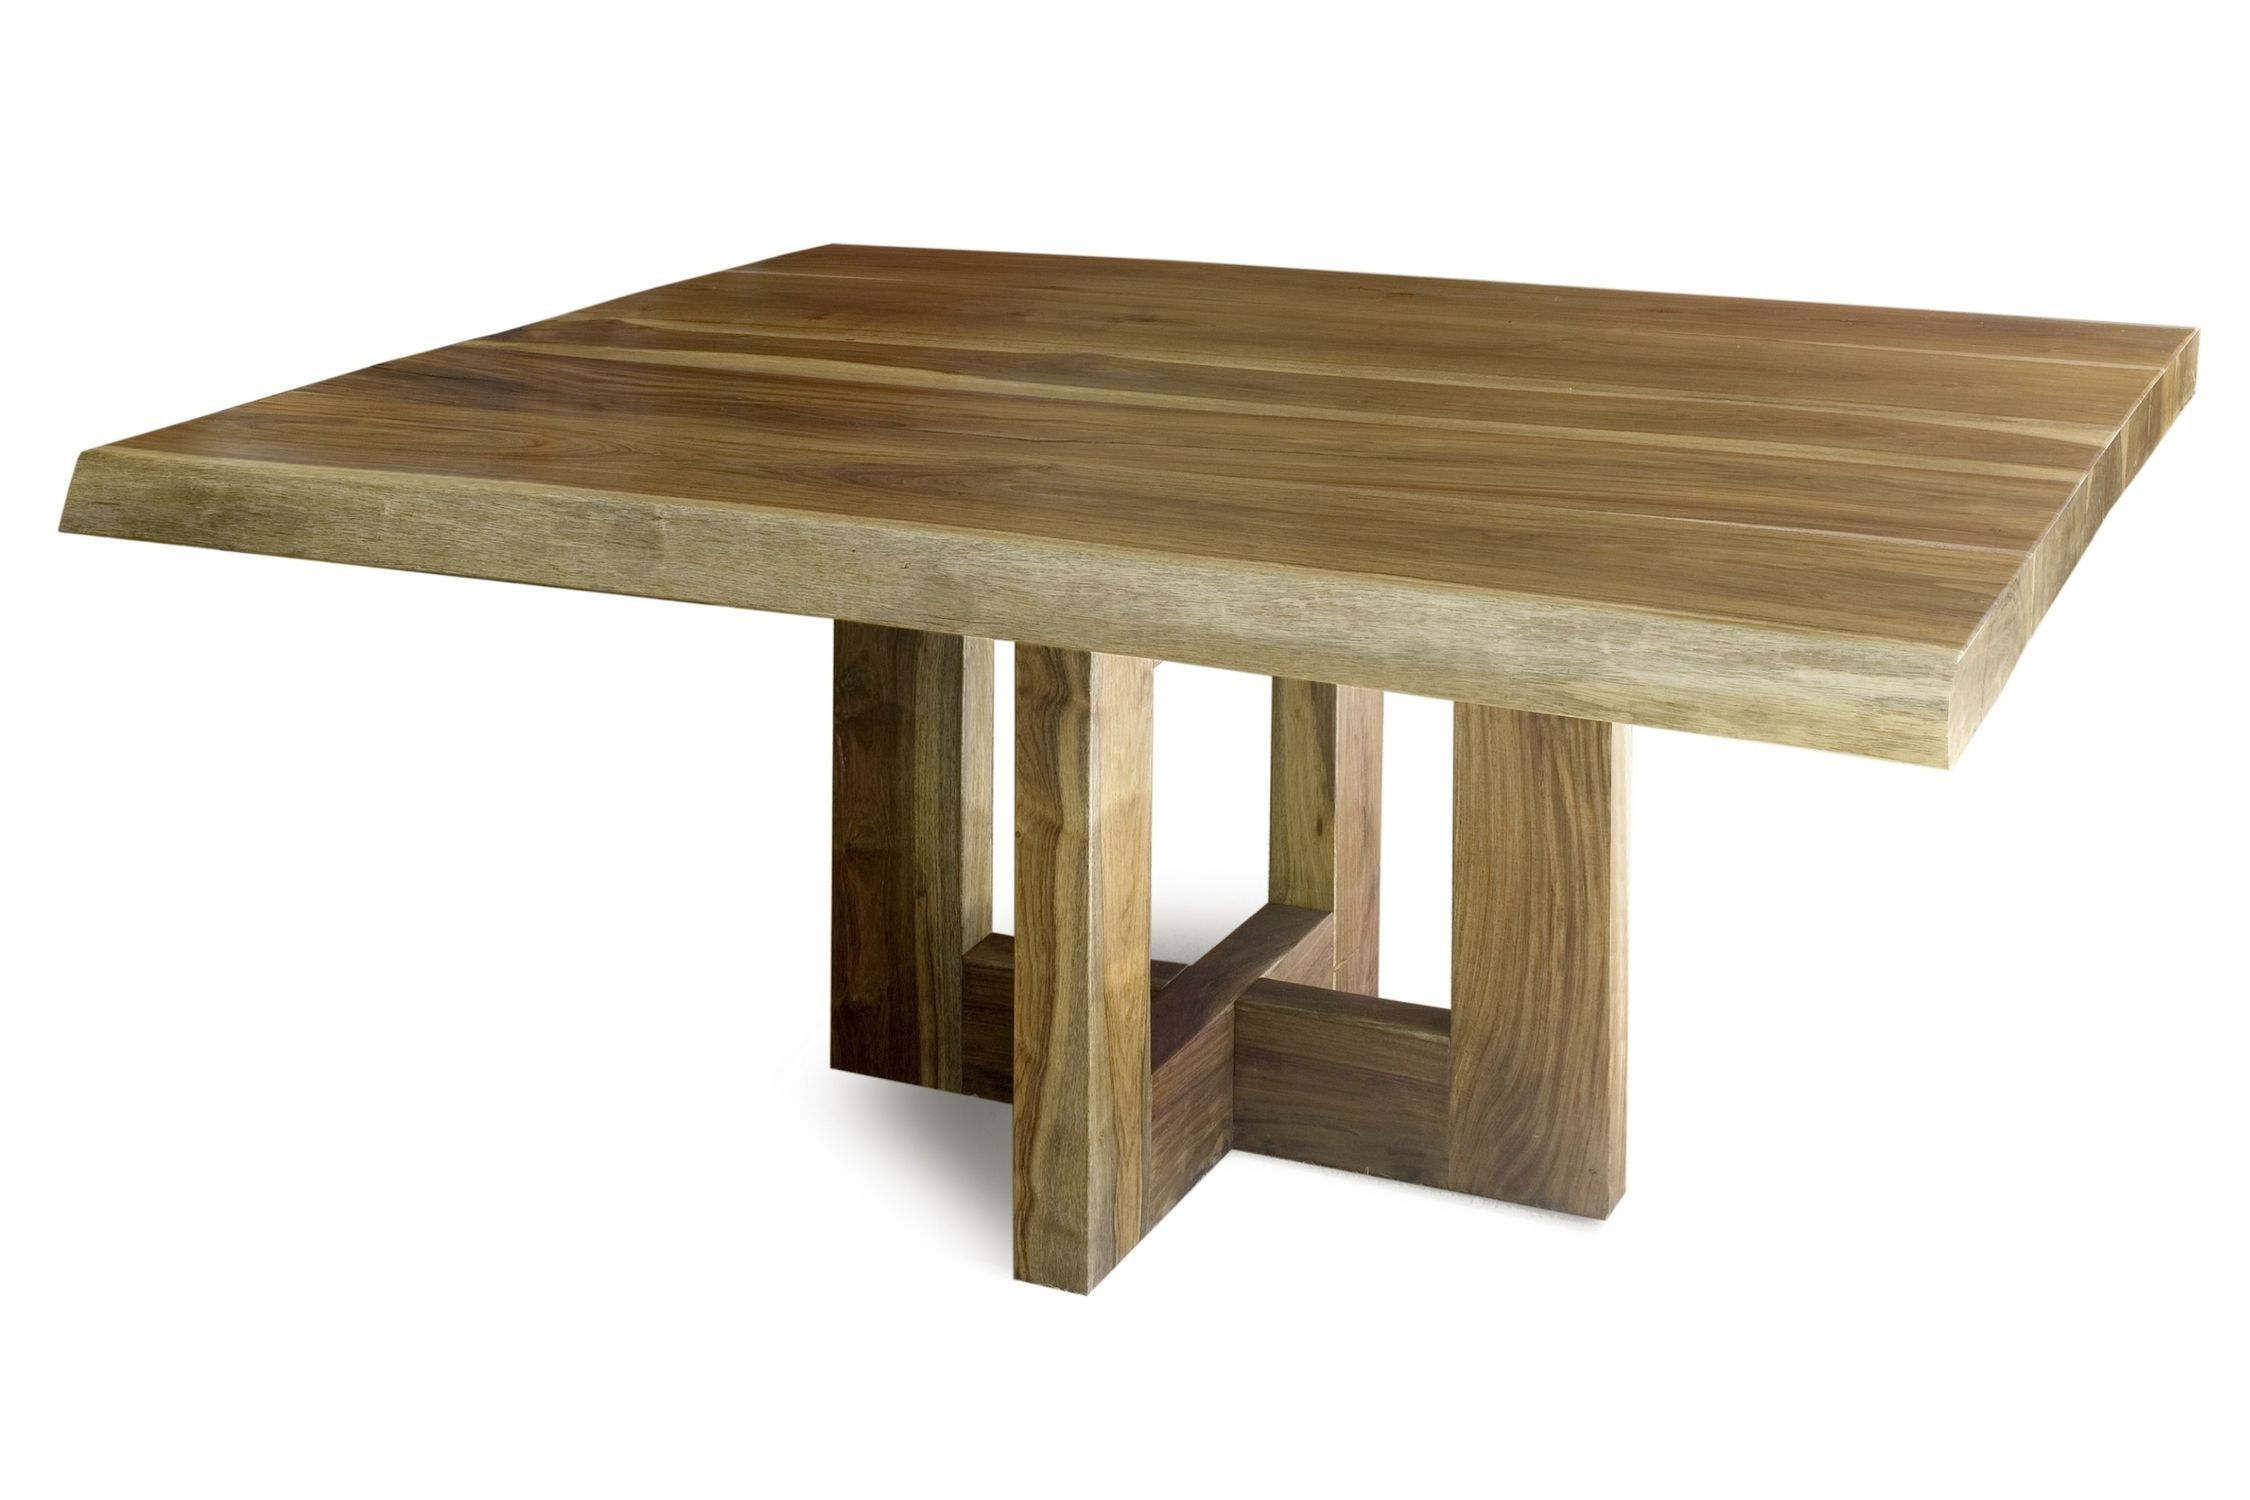 Contemporary rectangle unfinished reclaimed wood table for for Hardwood dining table